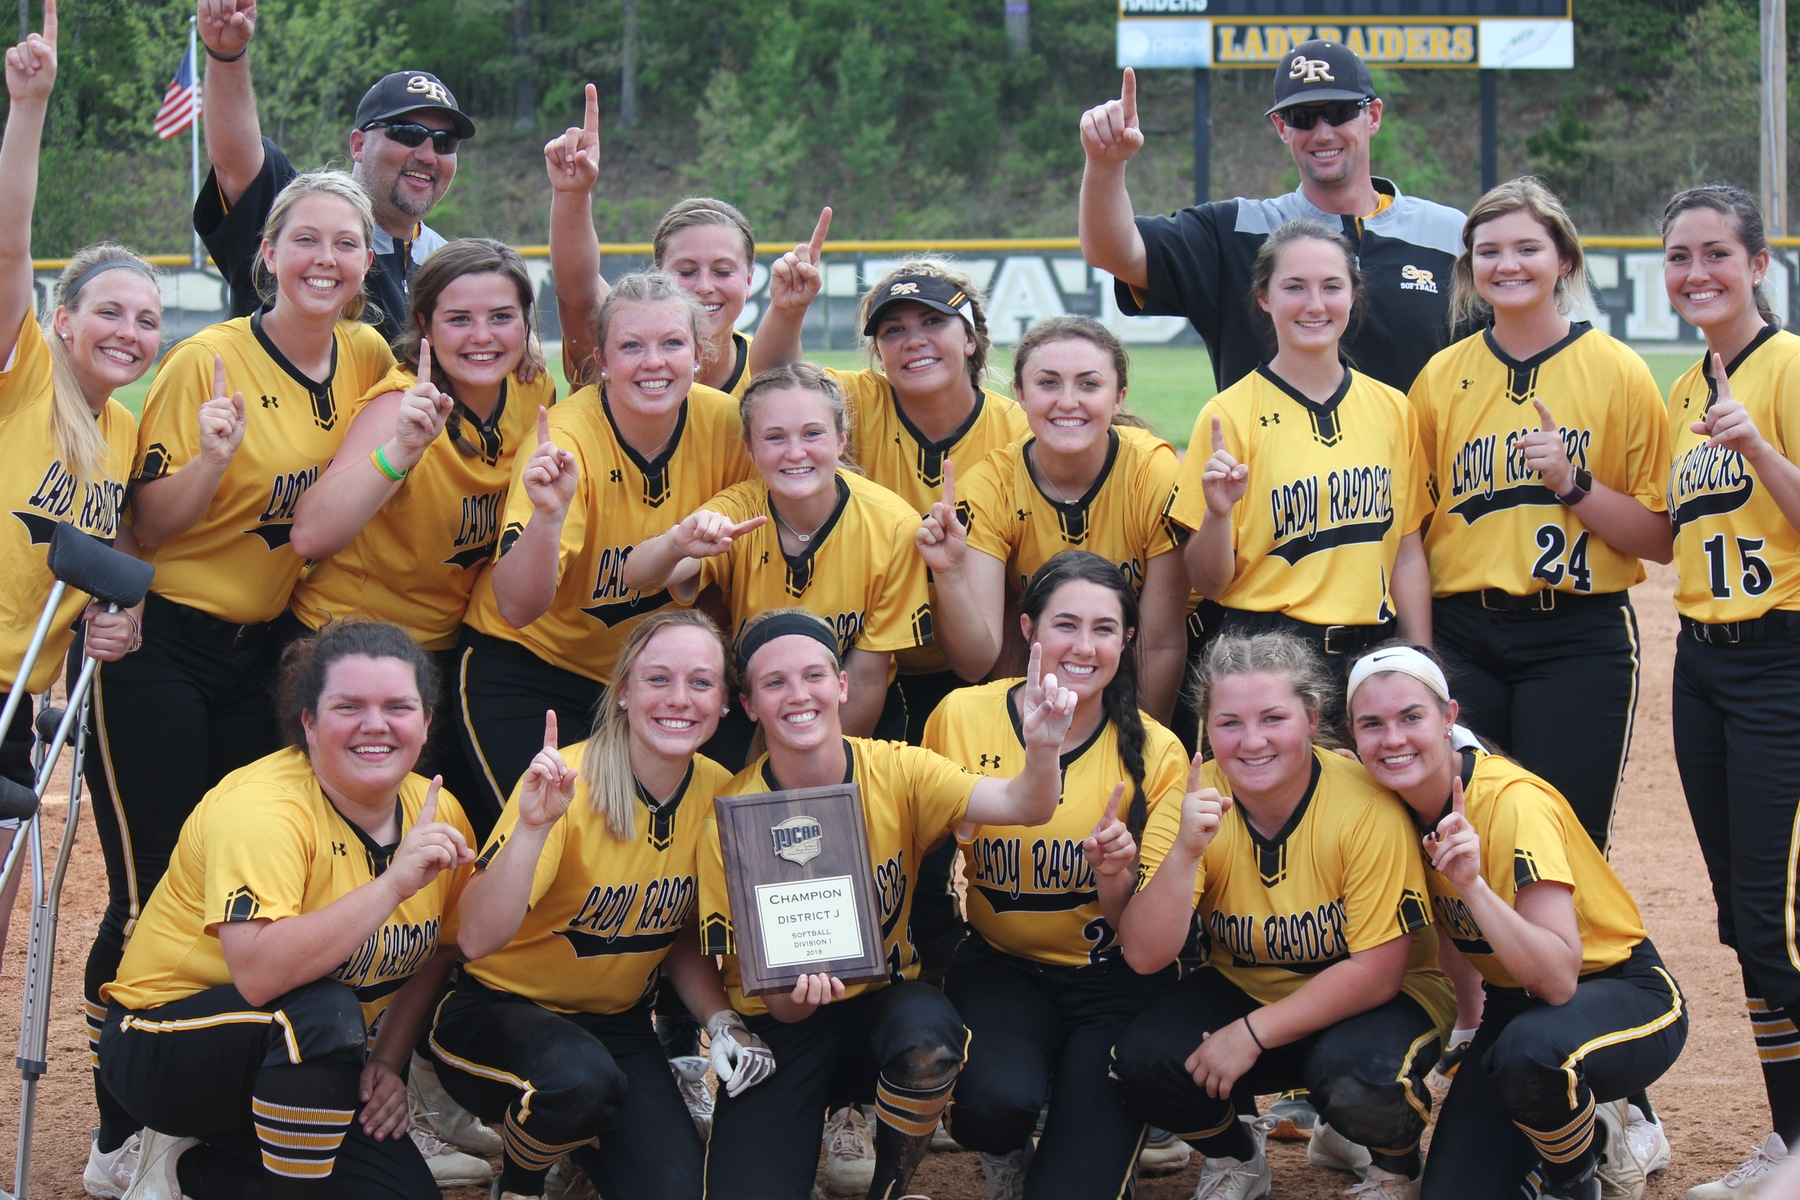 Lady Raiders stun No. 14 Indian Hills in district playoff to reach first NJCAA World Series